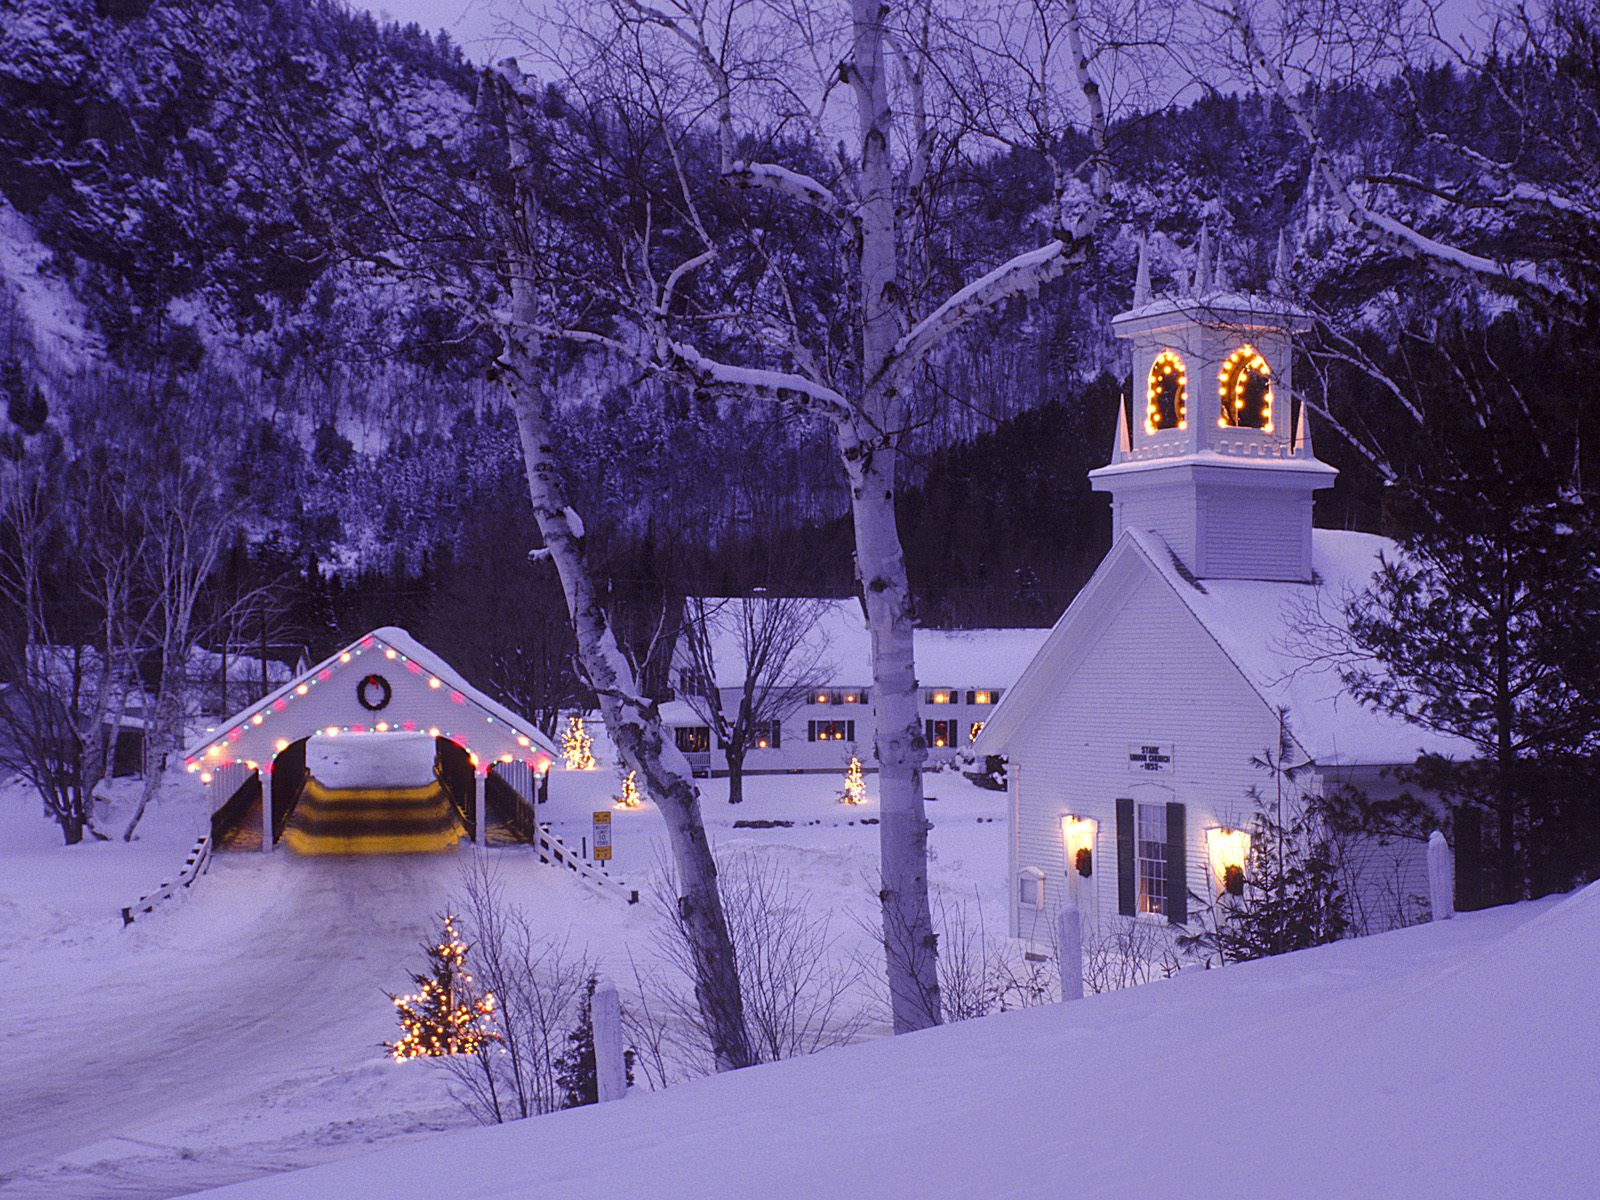 High Definition Pictures: HD Christmas Wallpapers & Desktop